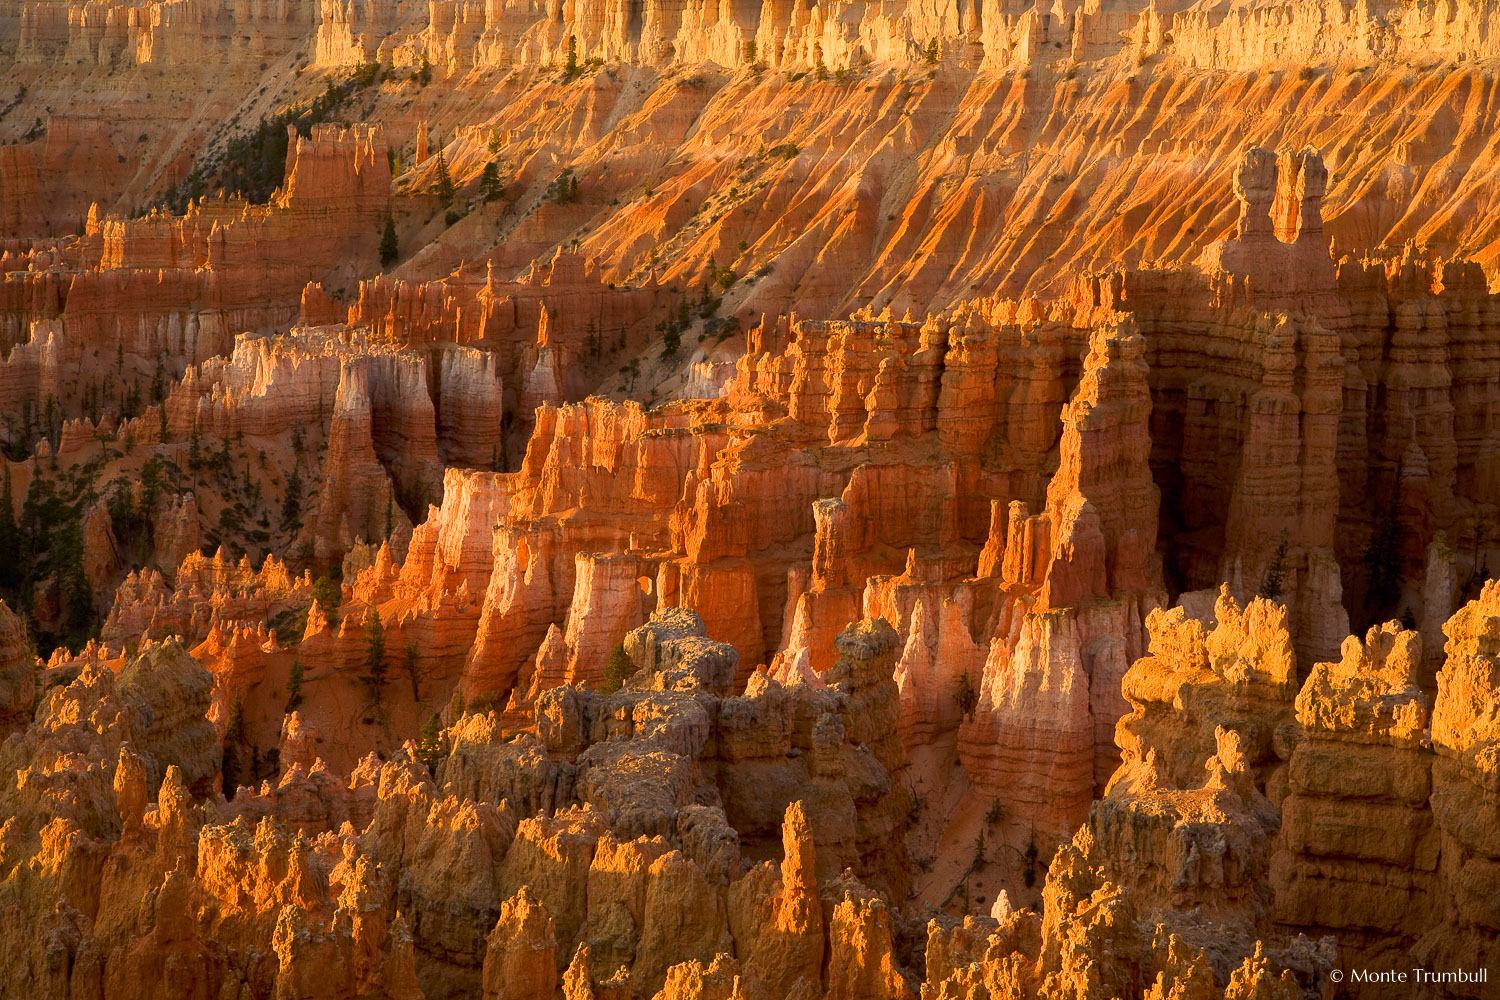 MT-20071107-071516-0009-Edit-Utah-Bryce-Canyon-National-Park-spires-glow-sunrise.jpg